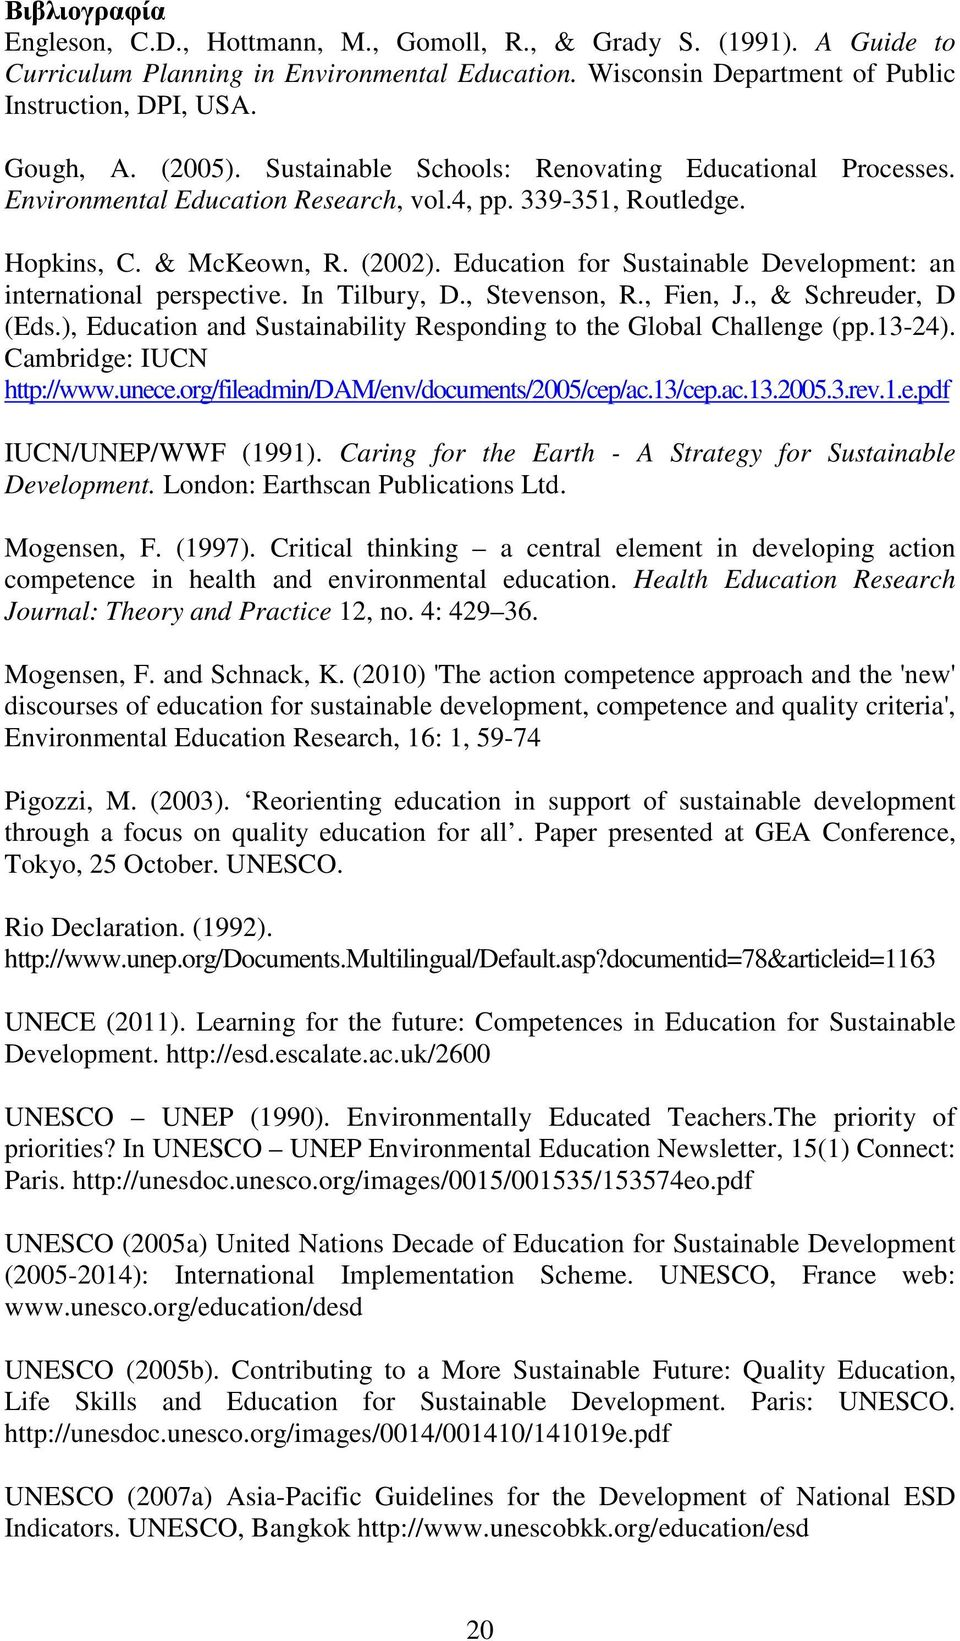 Education for Sustainable Development: an international perspective. In Tilbury, D., Stevenson, R., Fien, J., & Schreuder, D (Eds.